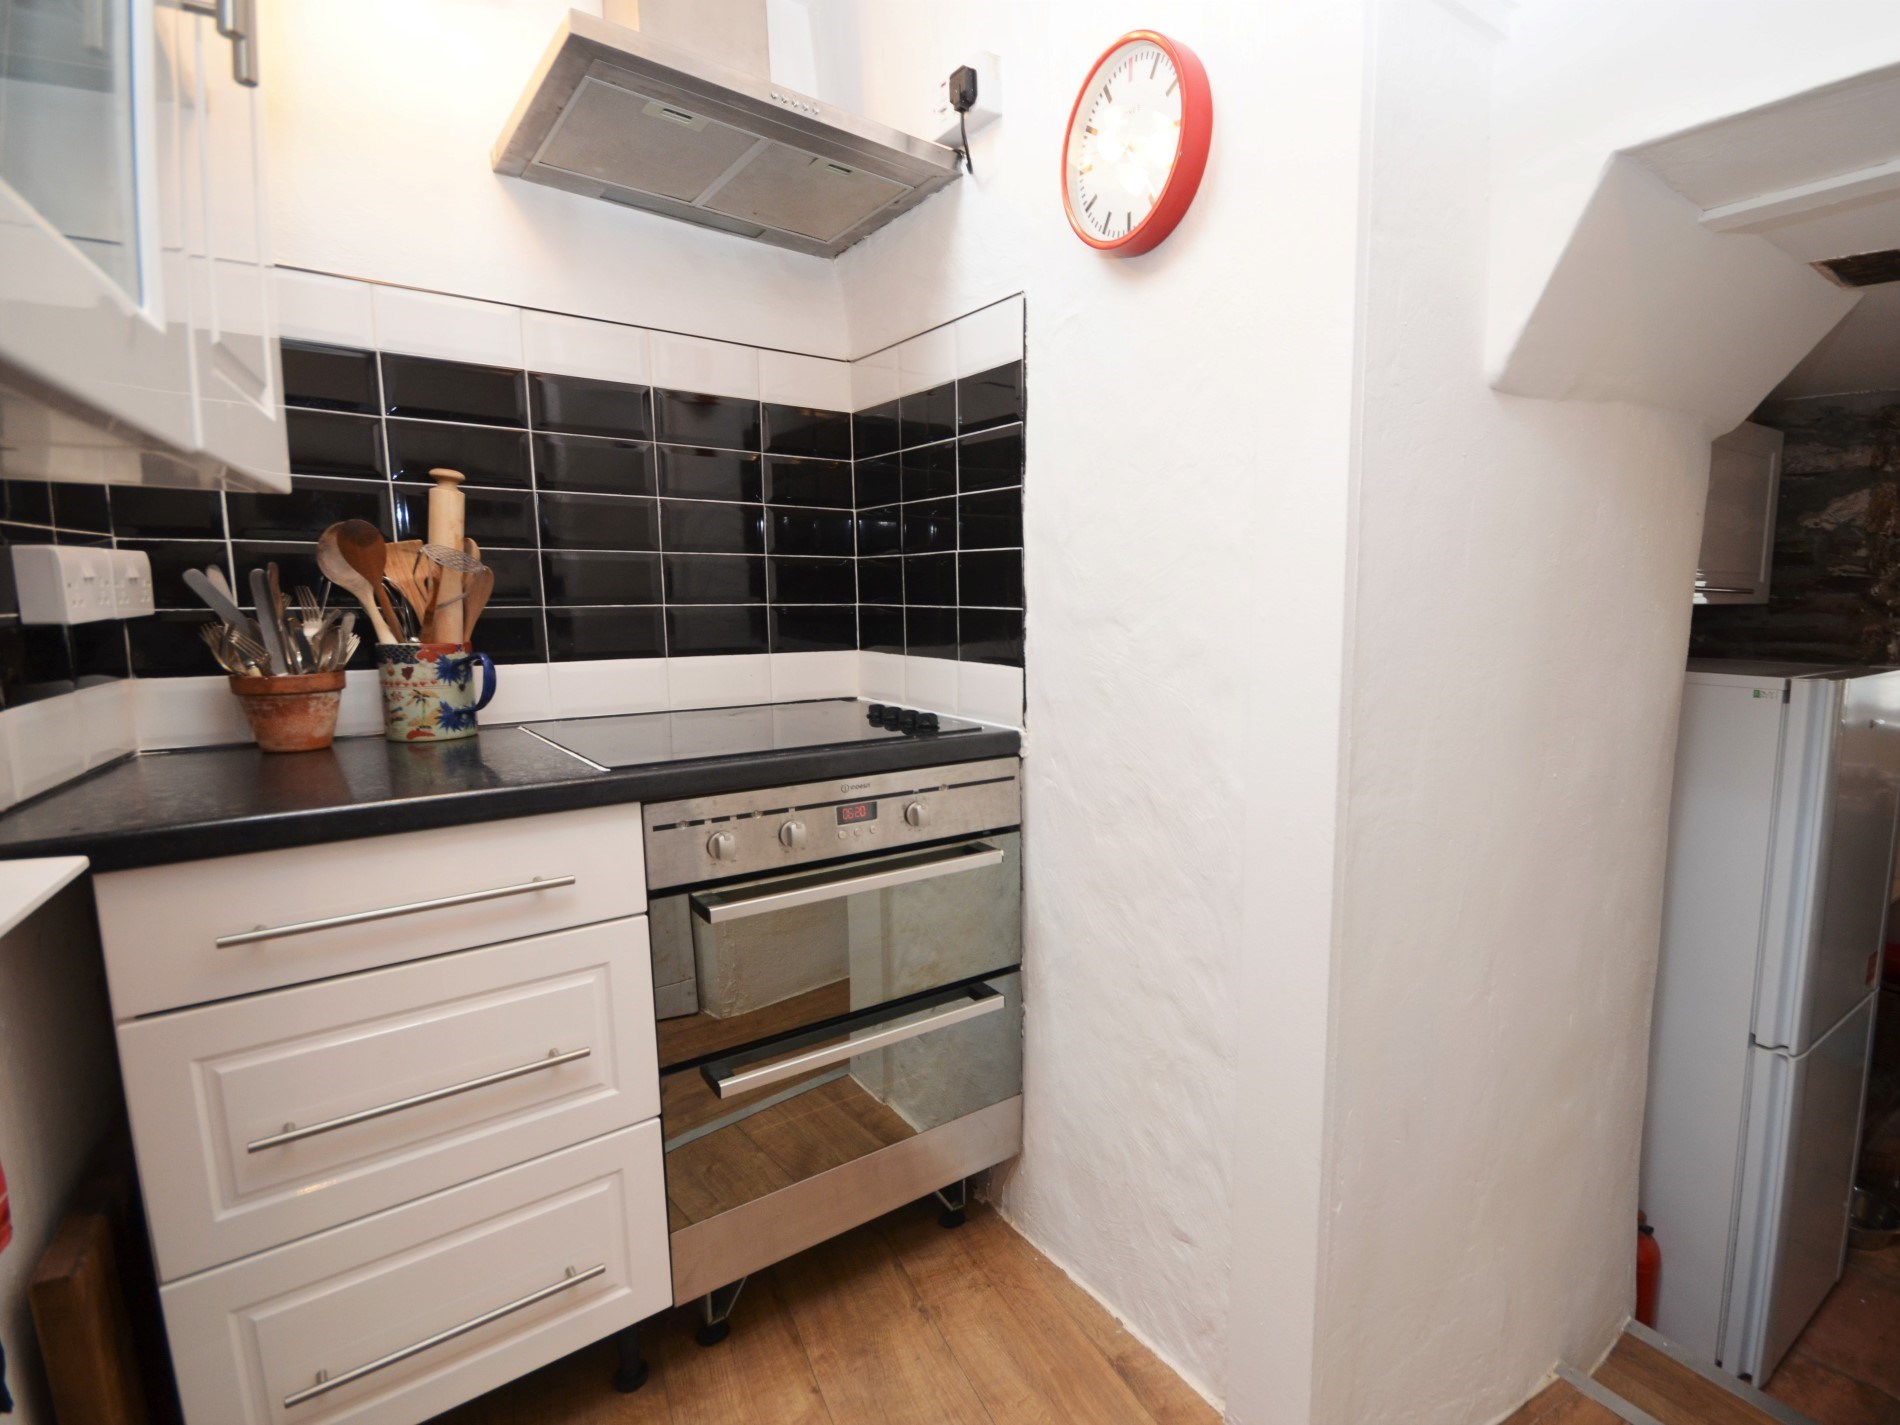 The fully equipped cosy kitchen area